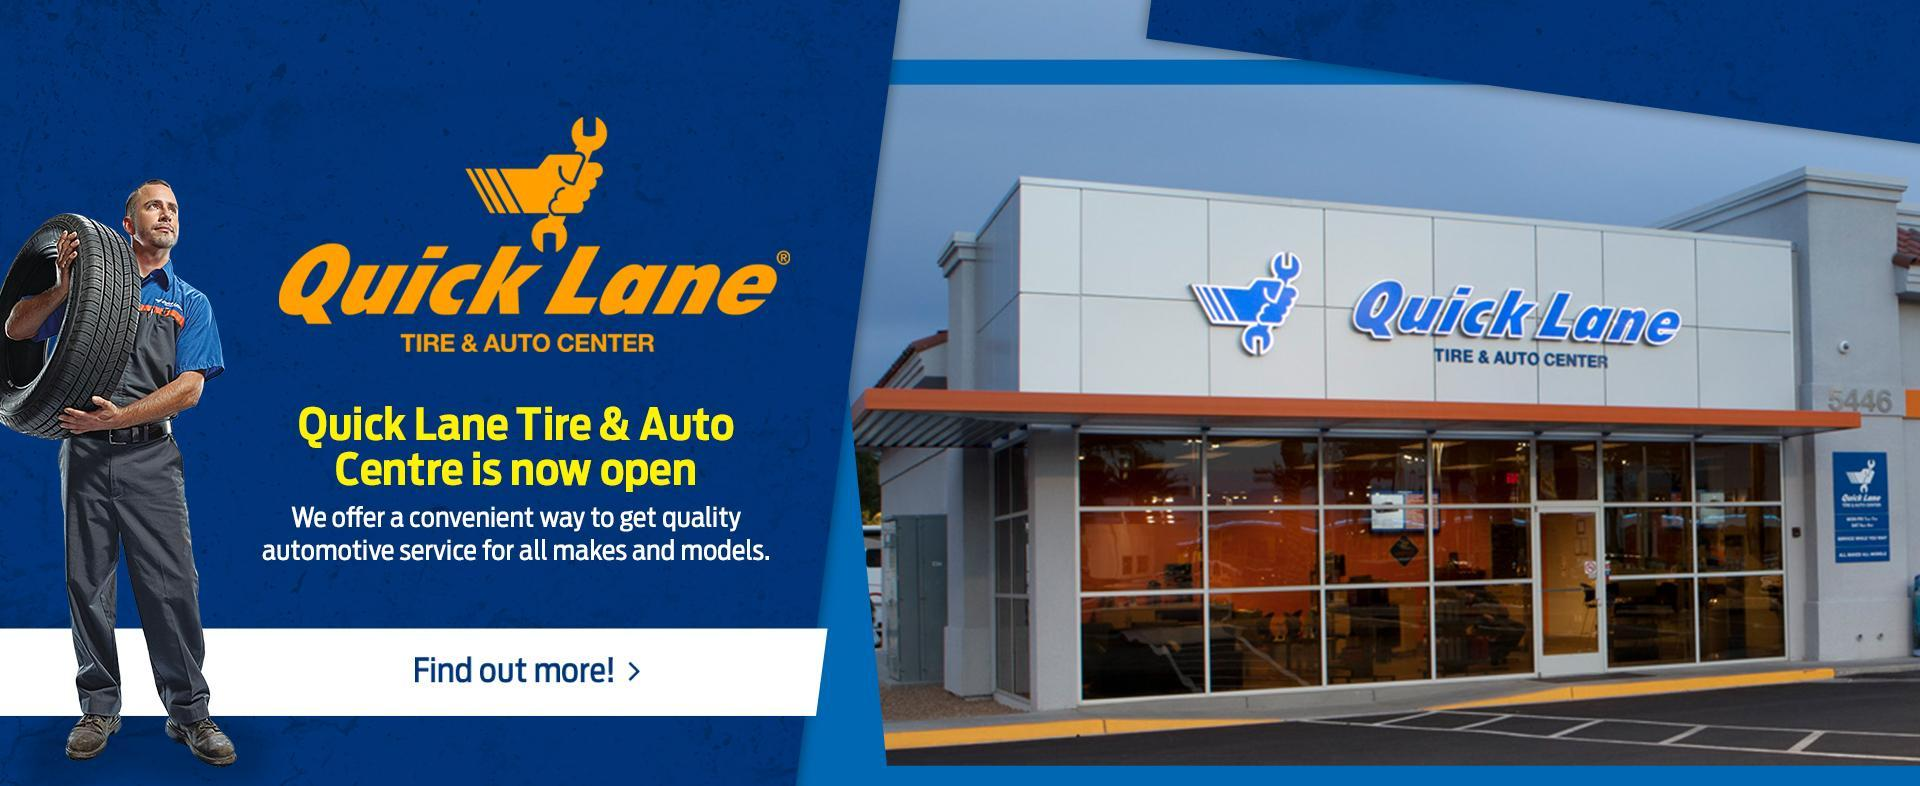 Ford Home QuickLane